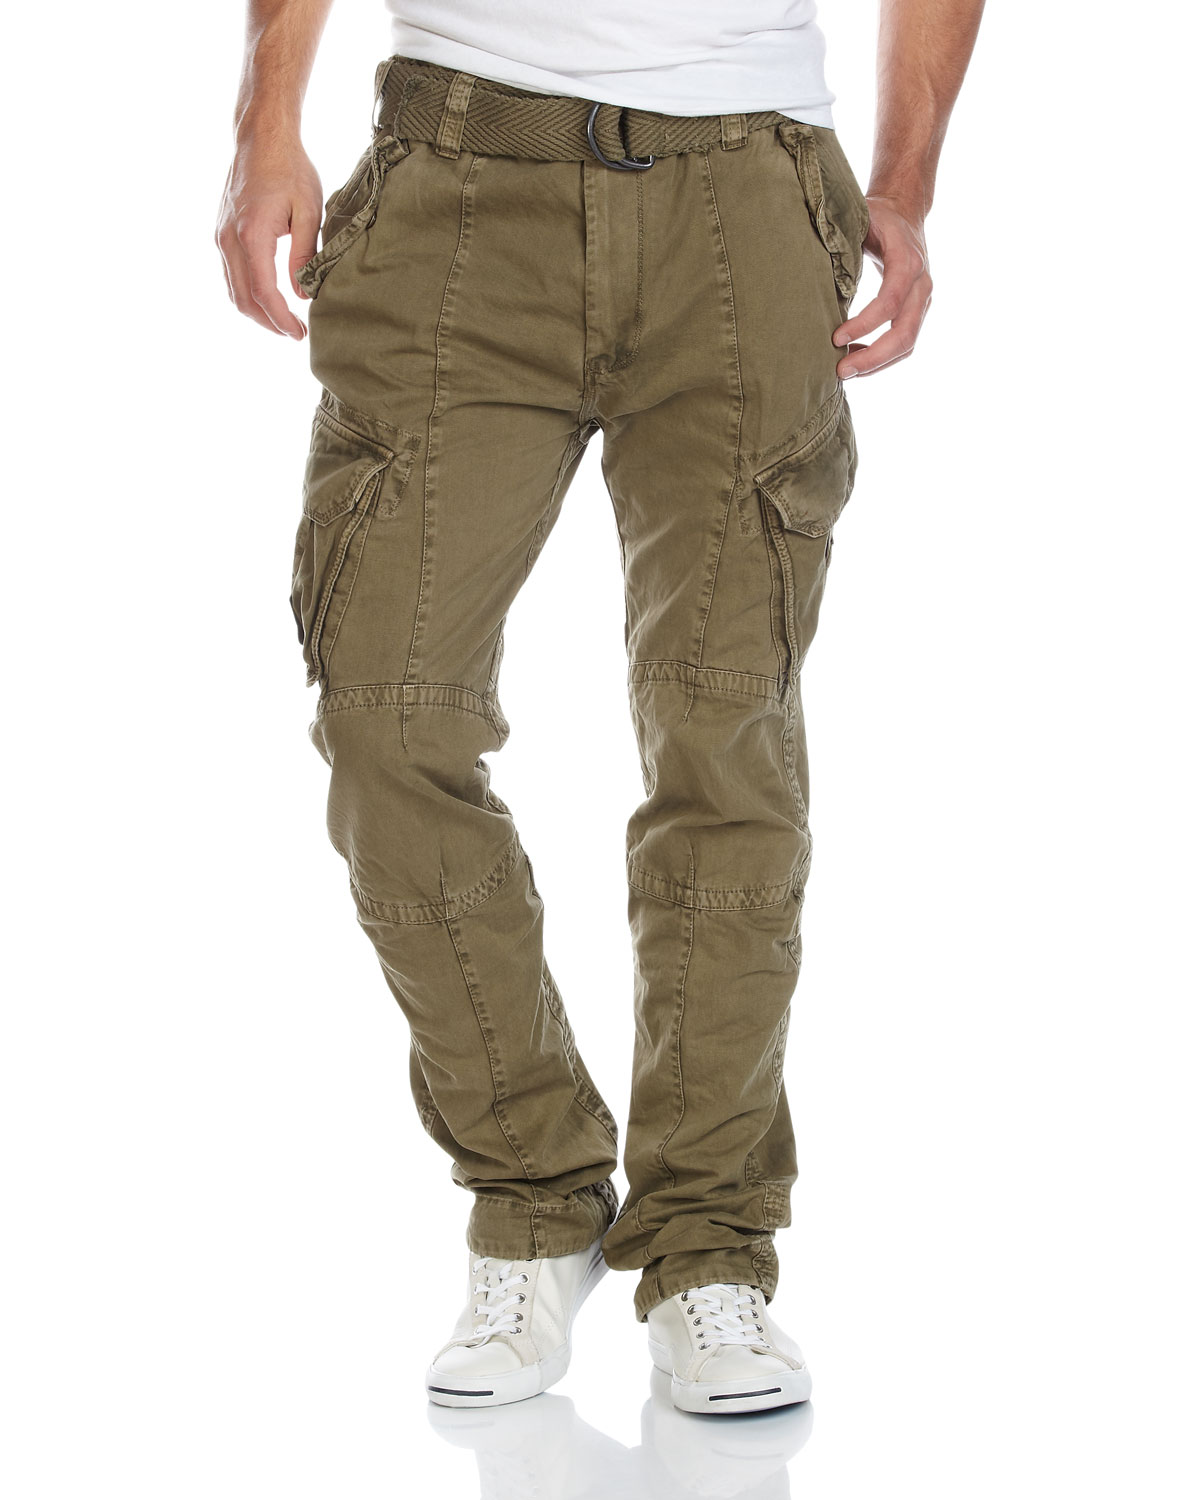 Shop for mens green cargo pants online at Target. Free shipping on purchases over $35 and save 5% every day with your Target REDcard.